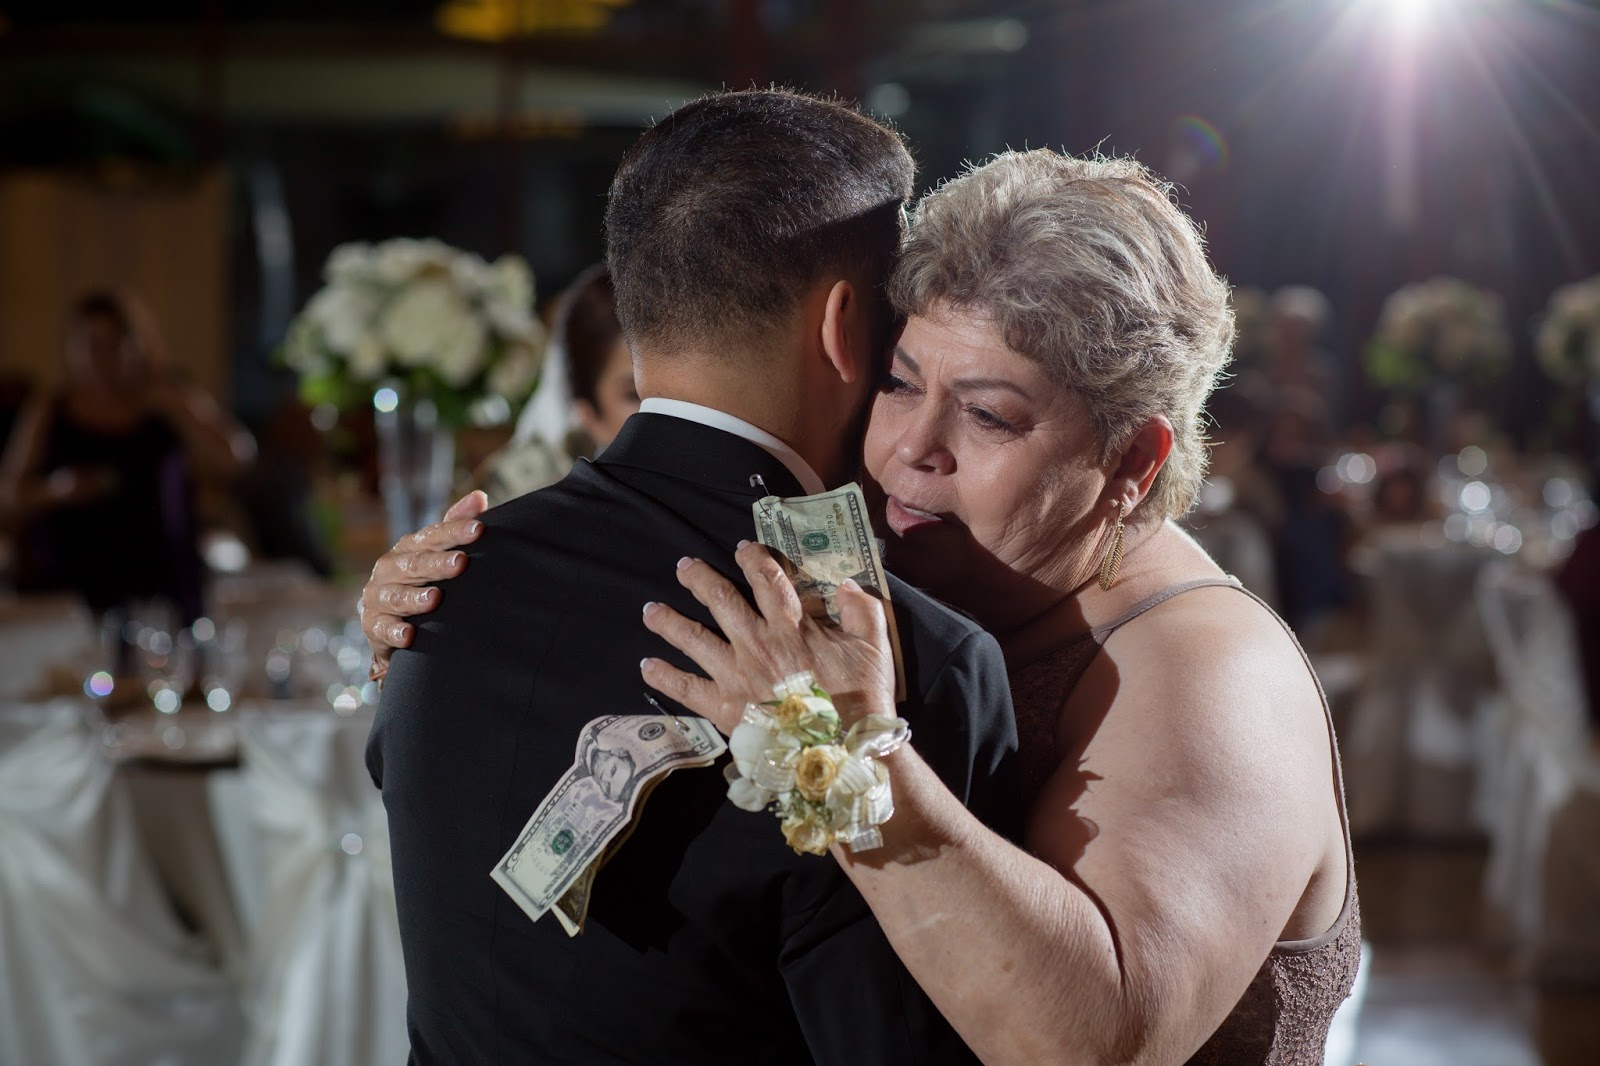 Groom and Mother of Groom share a Dance